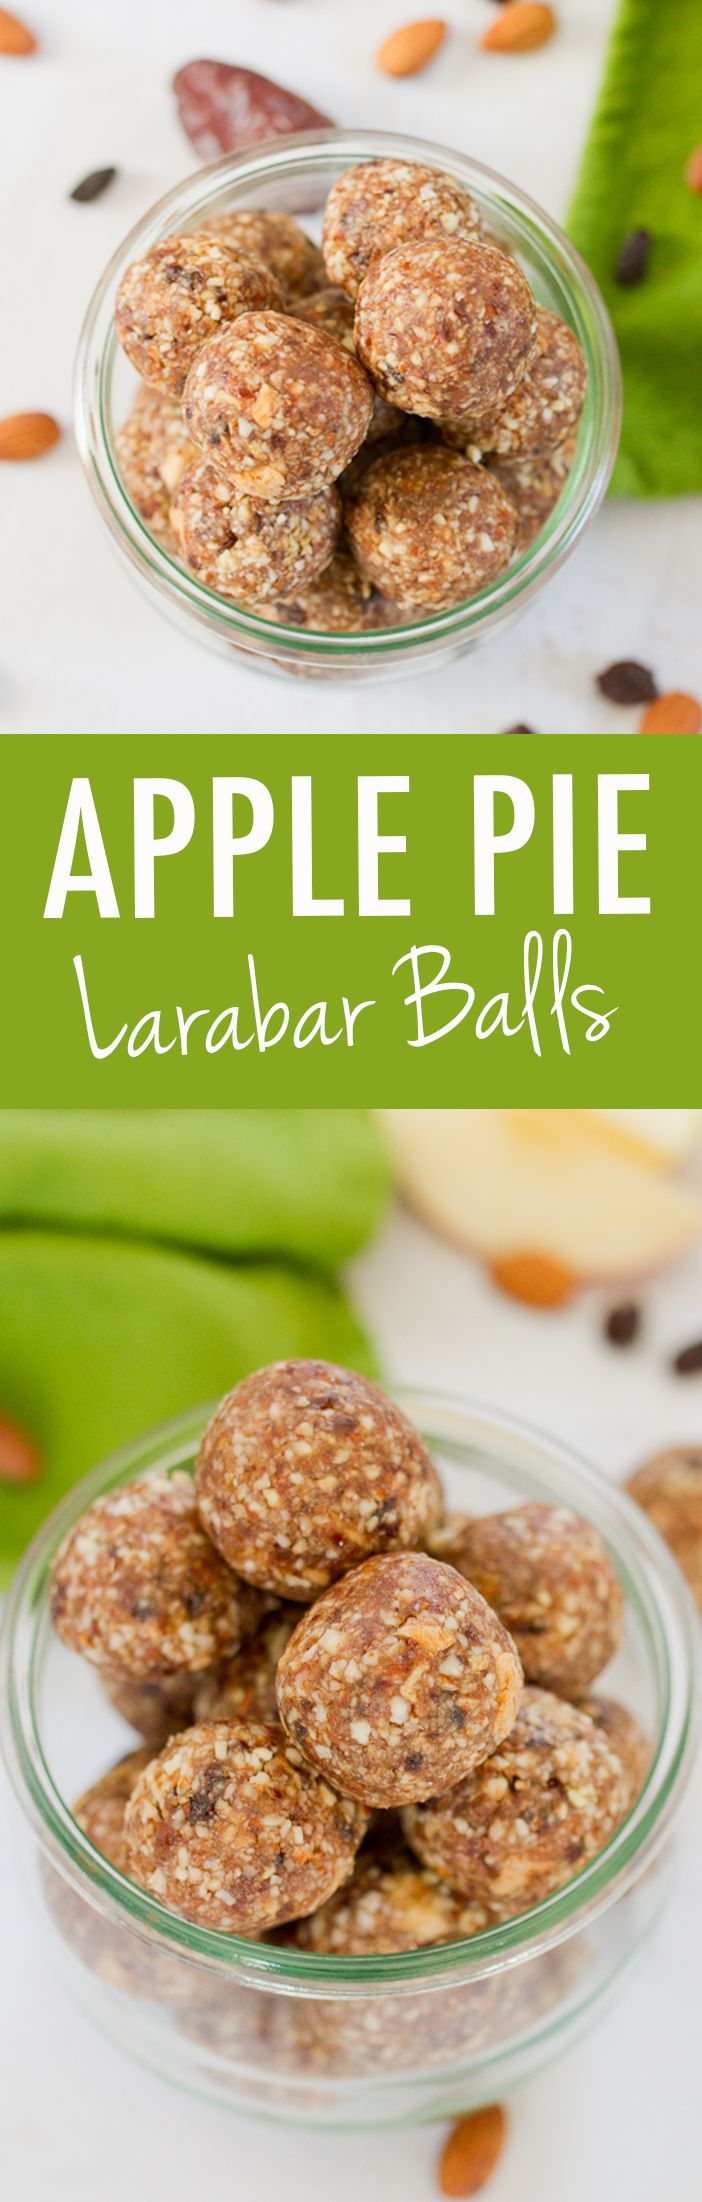 Apple Pie Larabar Balls -- Filled with apple cinnamon flavor these healthy Apple Pie Larabar Balls are the perfect portable snack.